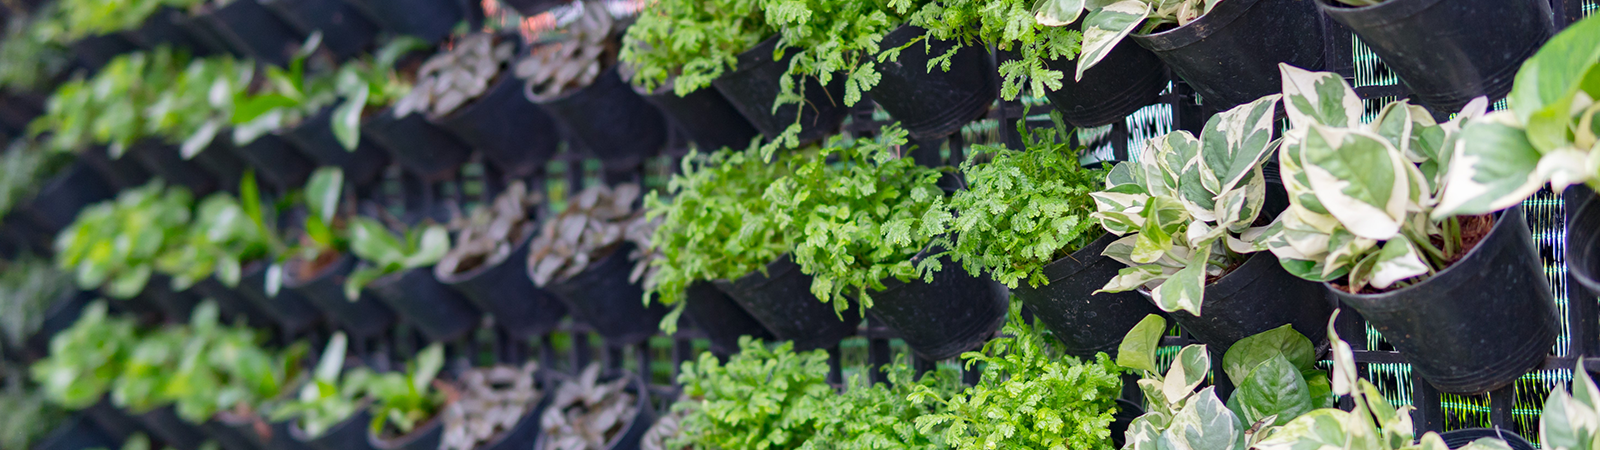 Vertical Farming - the reinvention of horticulture?